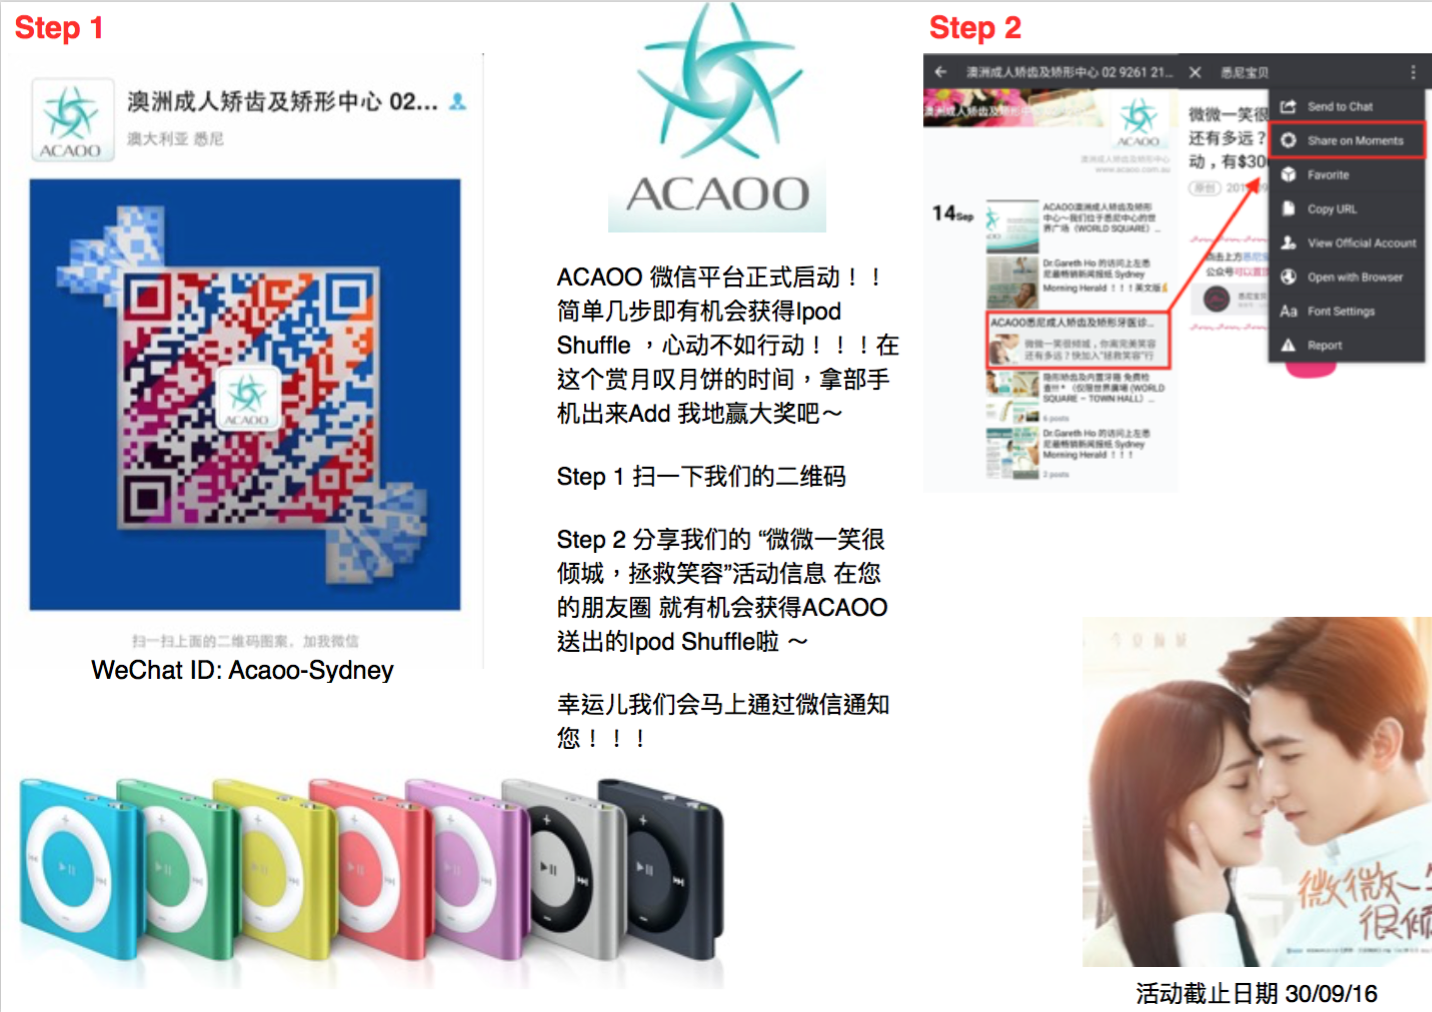 acaoo-wechat-activity